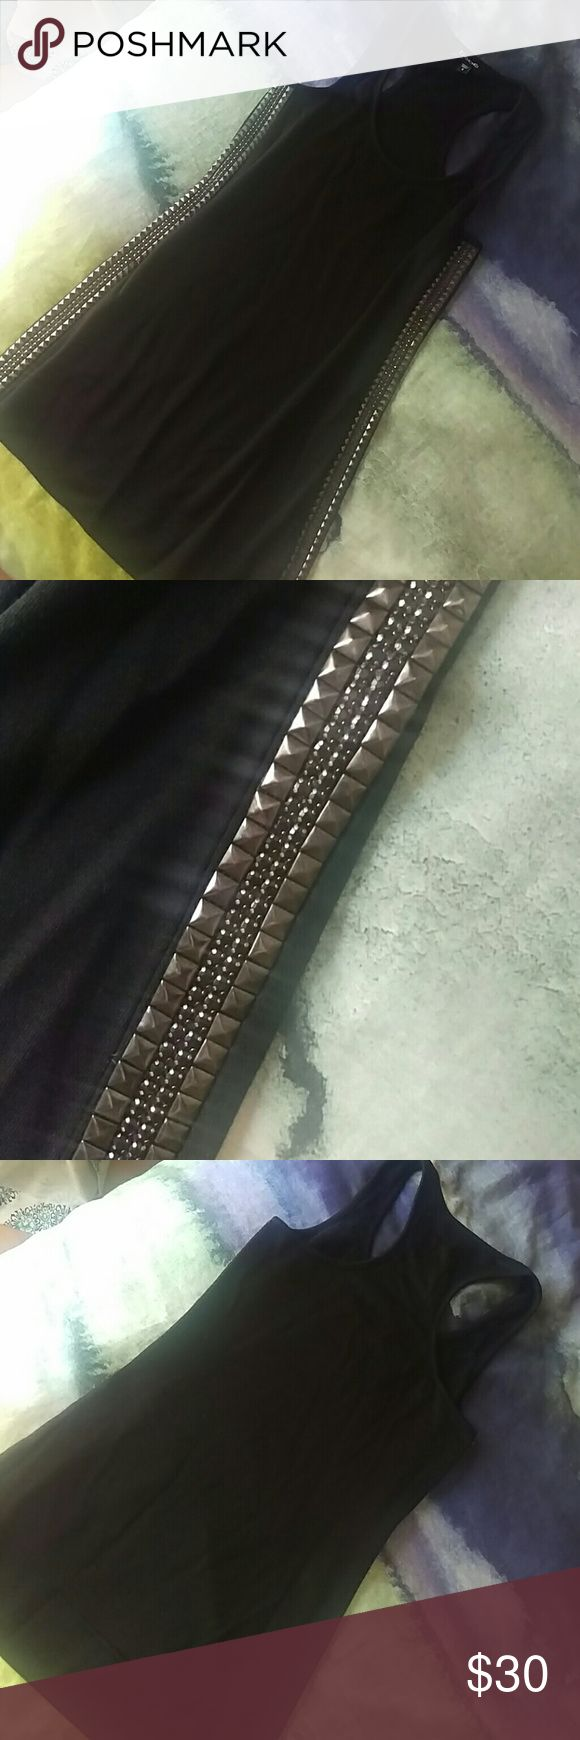 Bebe Studded Racer Tank Top So edgy and punk rock! This racerback tank top is made out of French Terry sweatshirt type material and features multiple rows of pyramid studs and small black rhinestones down the sides. Super cute with boots and leggings! bebe Tops Tank Tops